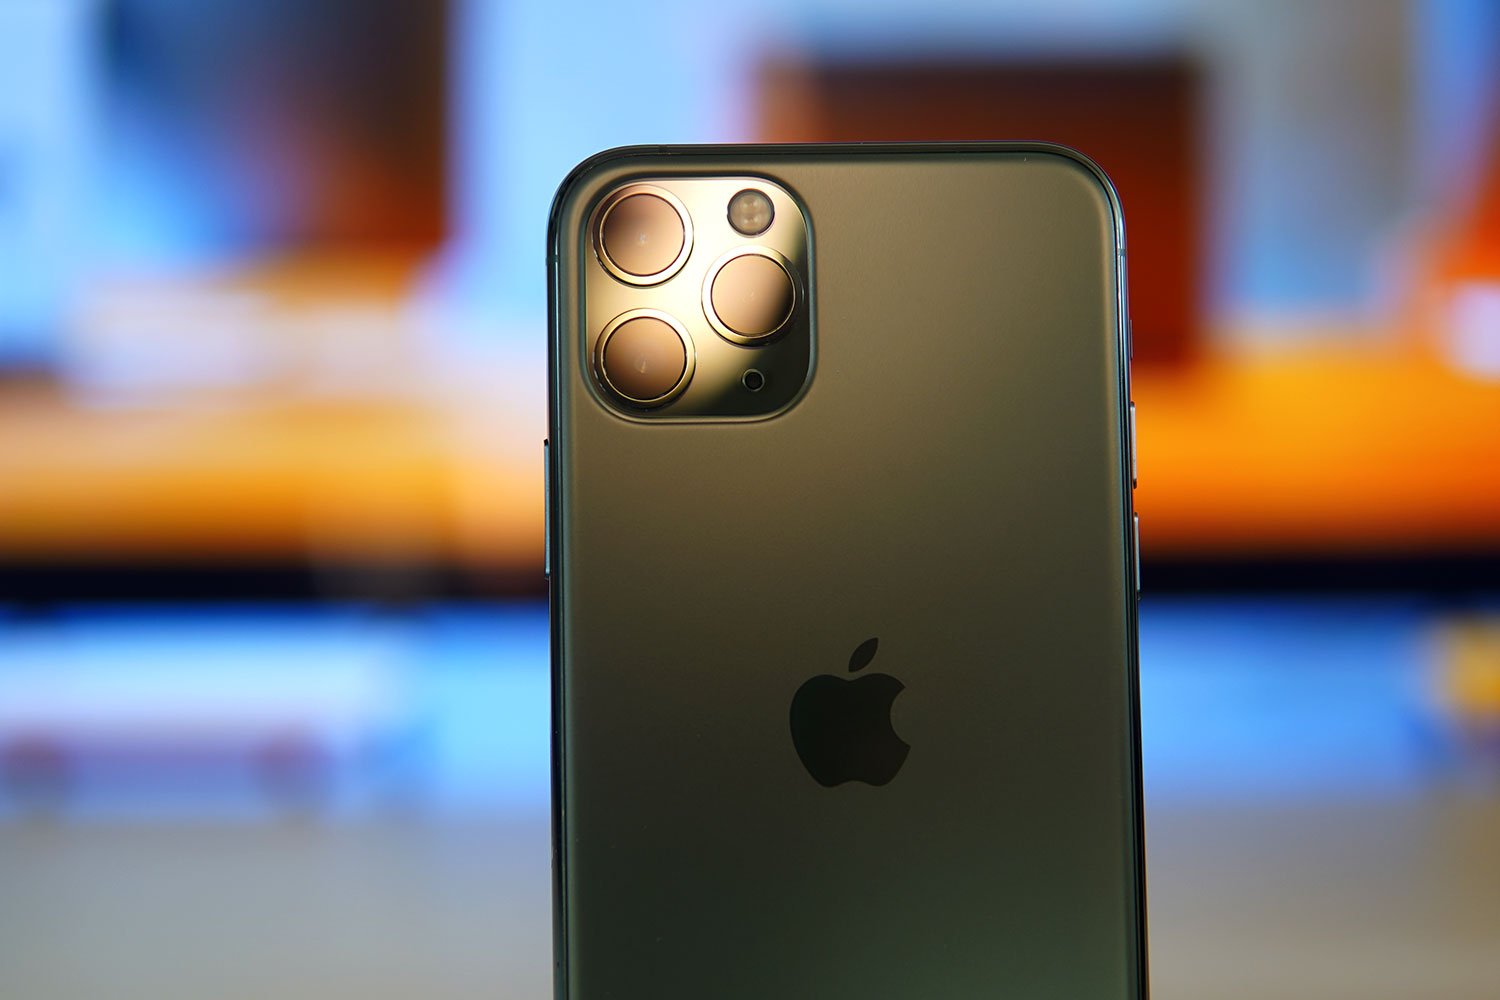 Some iPhone 11 Devices Are Displaying A Weird Green Tint On Their Displays